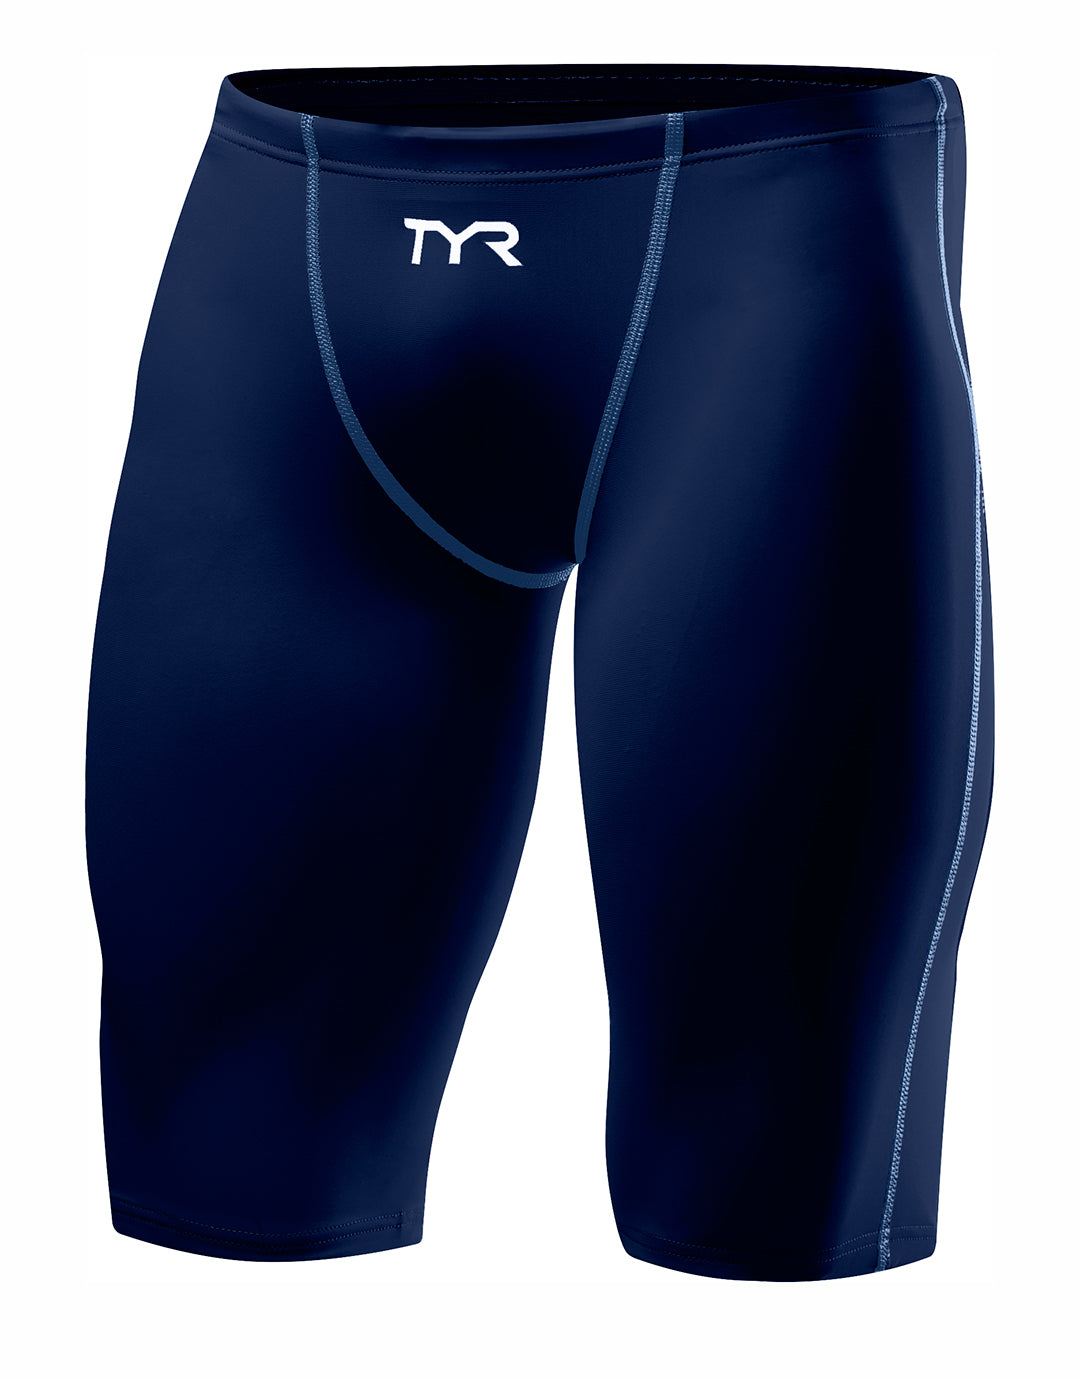 TYR Thresher Jammer Navy